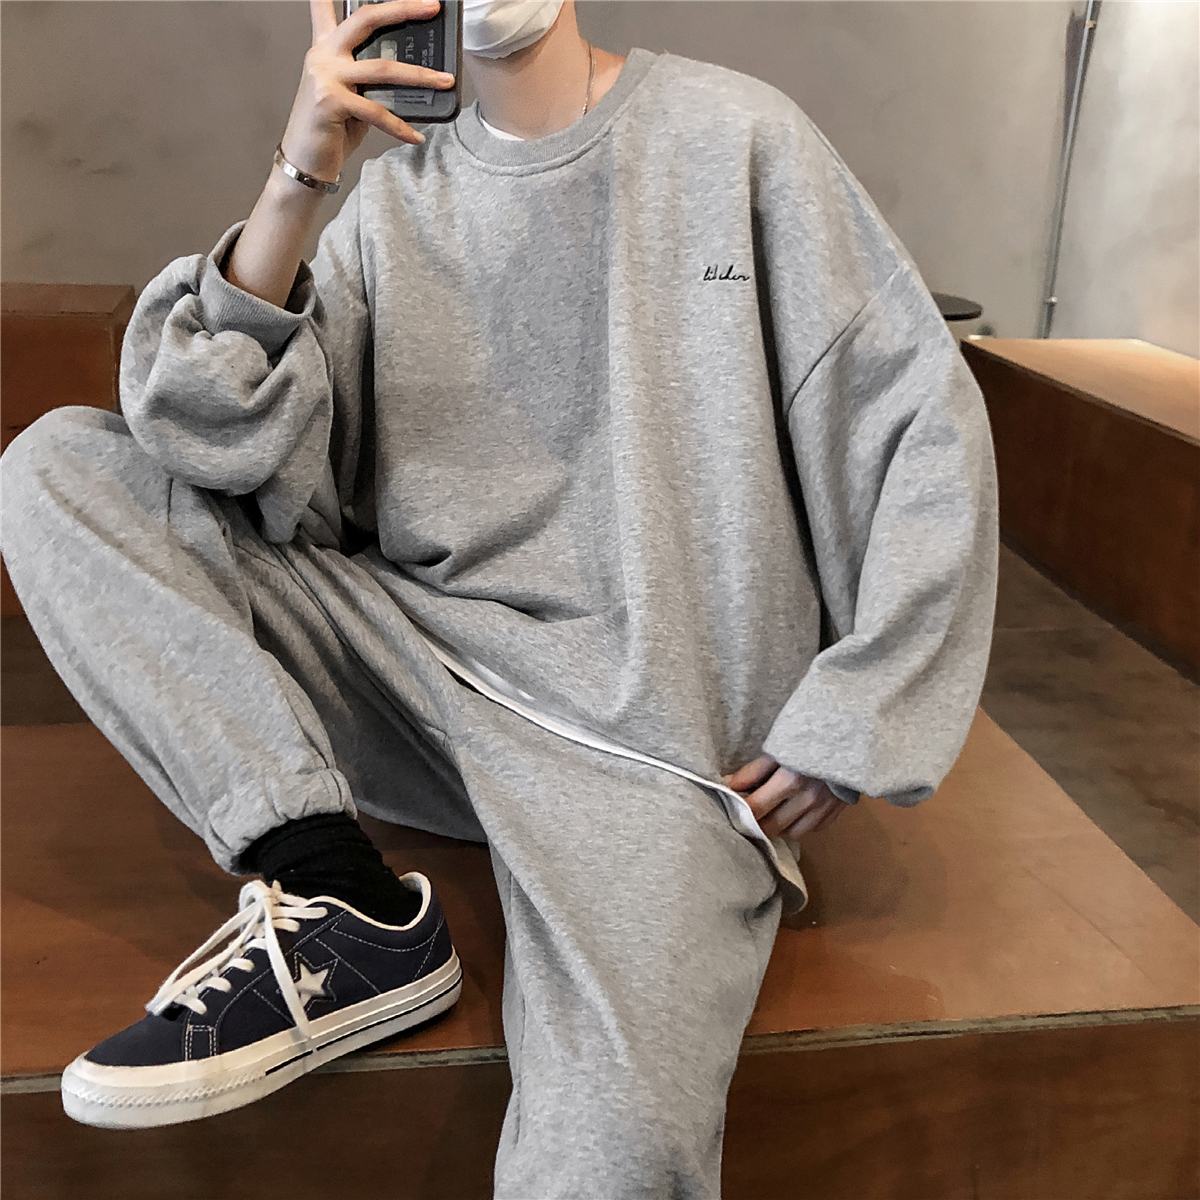 2020 (hoodies+pants) Men's Solid Color Round Neck Coats Motion Tracksuit Clothing Sportswear Tracksuits Grey/black Leisure Sets